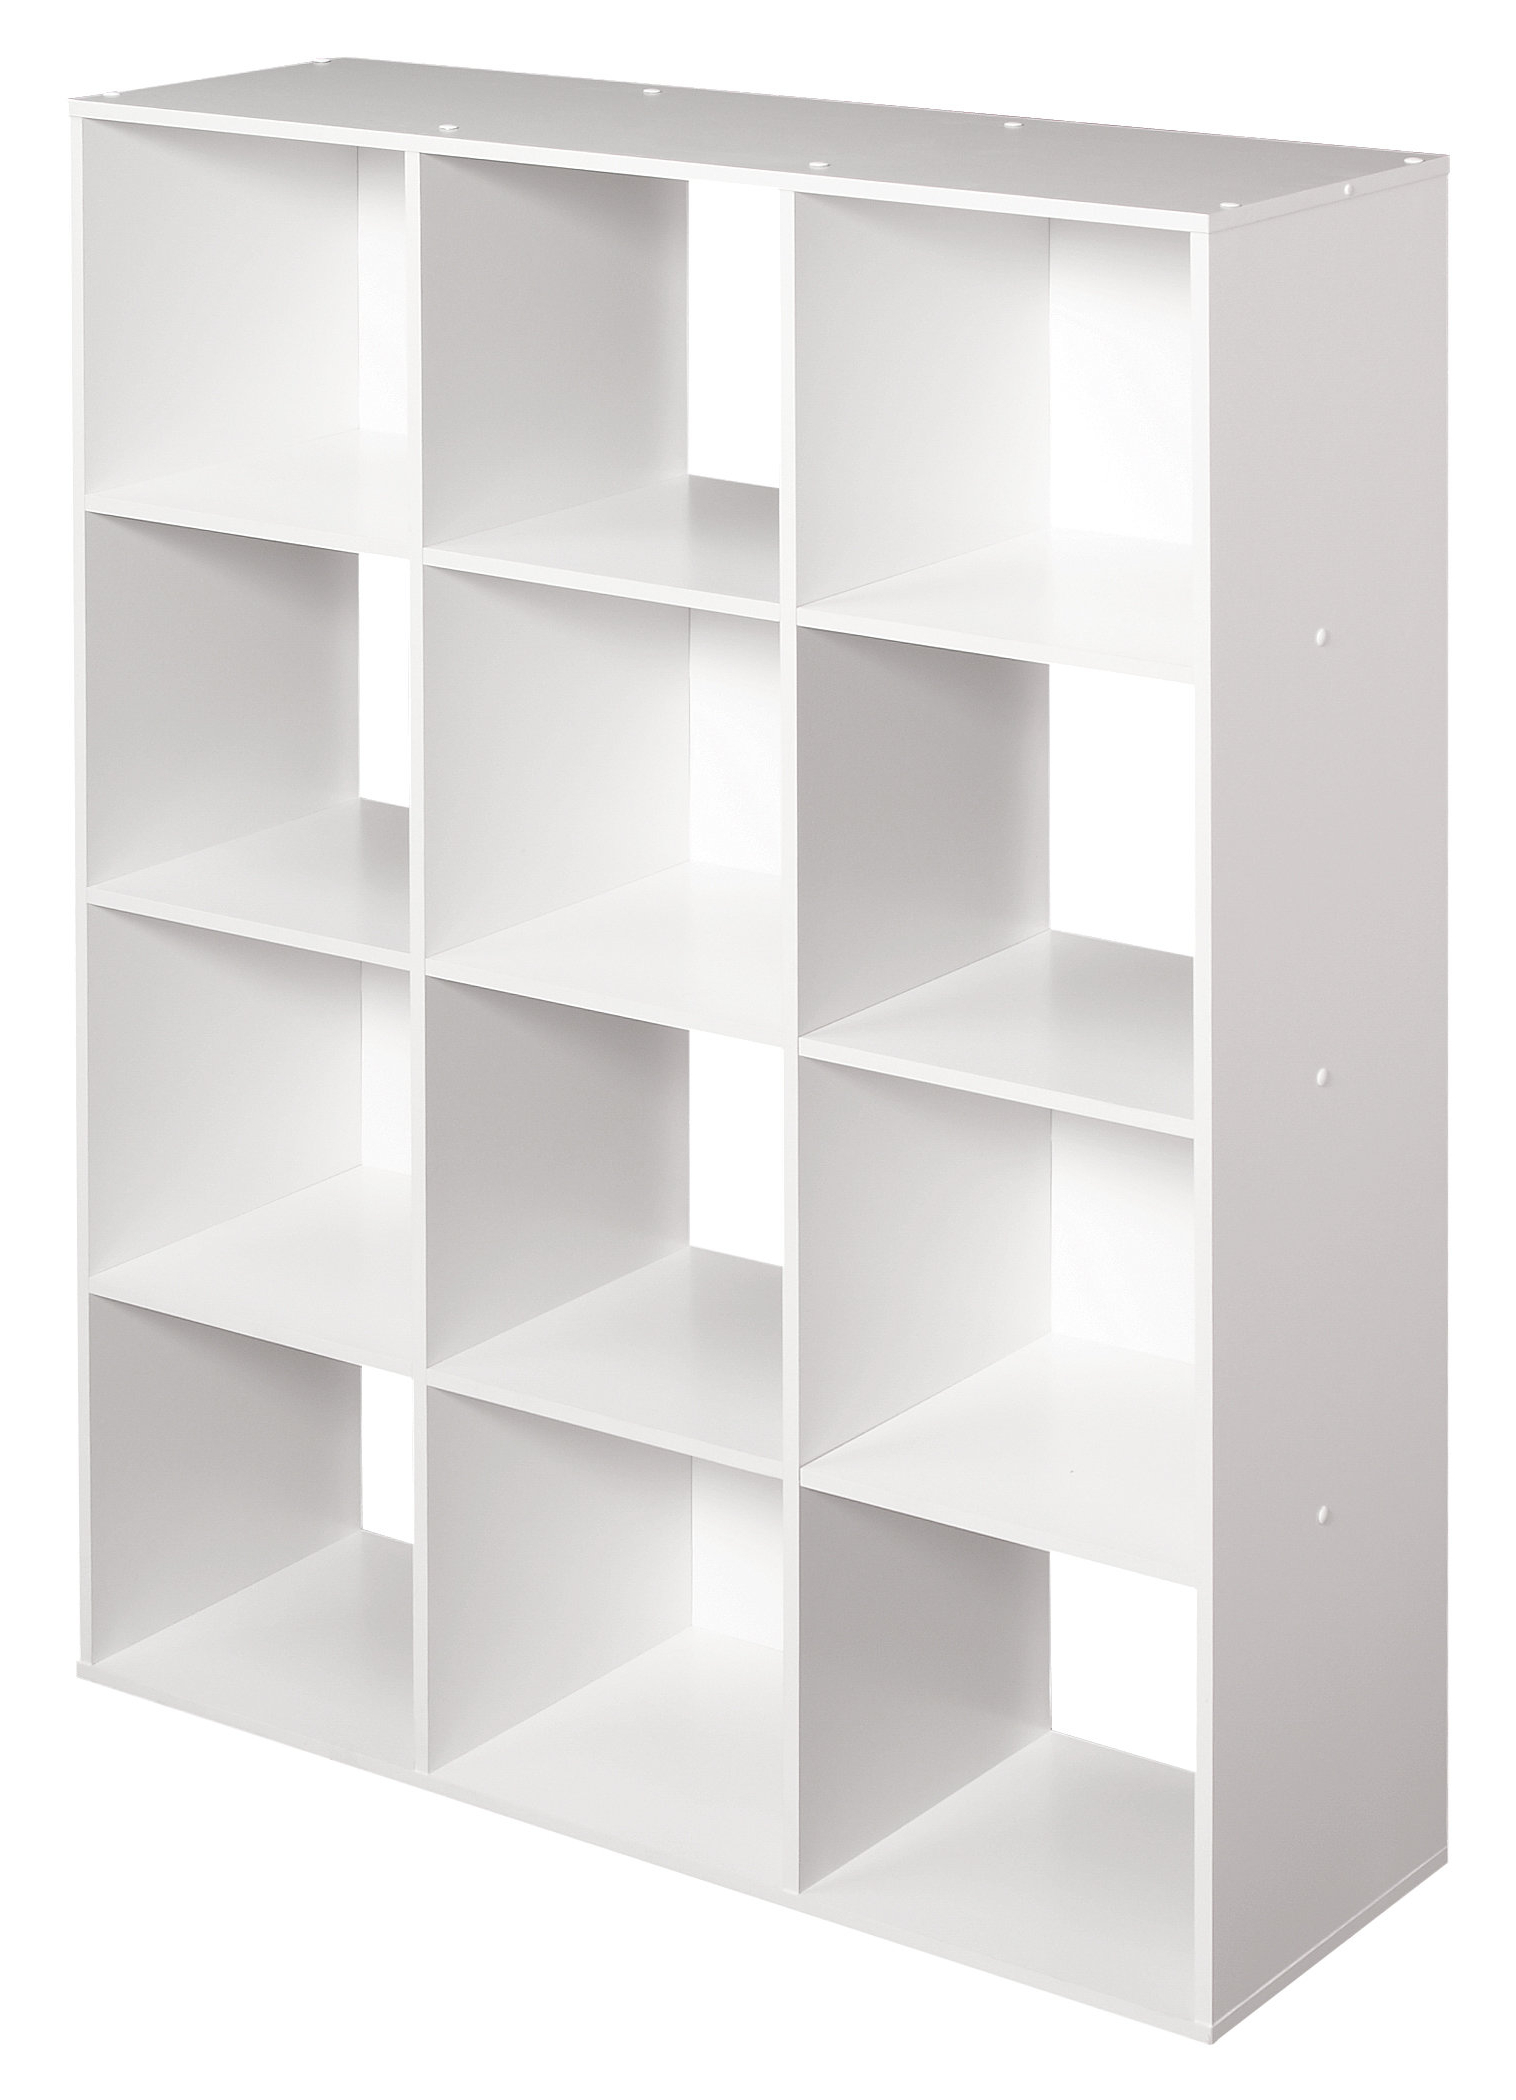 Most Current Cubicals Cube Bookcases Throughout Closetmaid Cubicals Cube Bookcase (View 2 of 20)